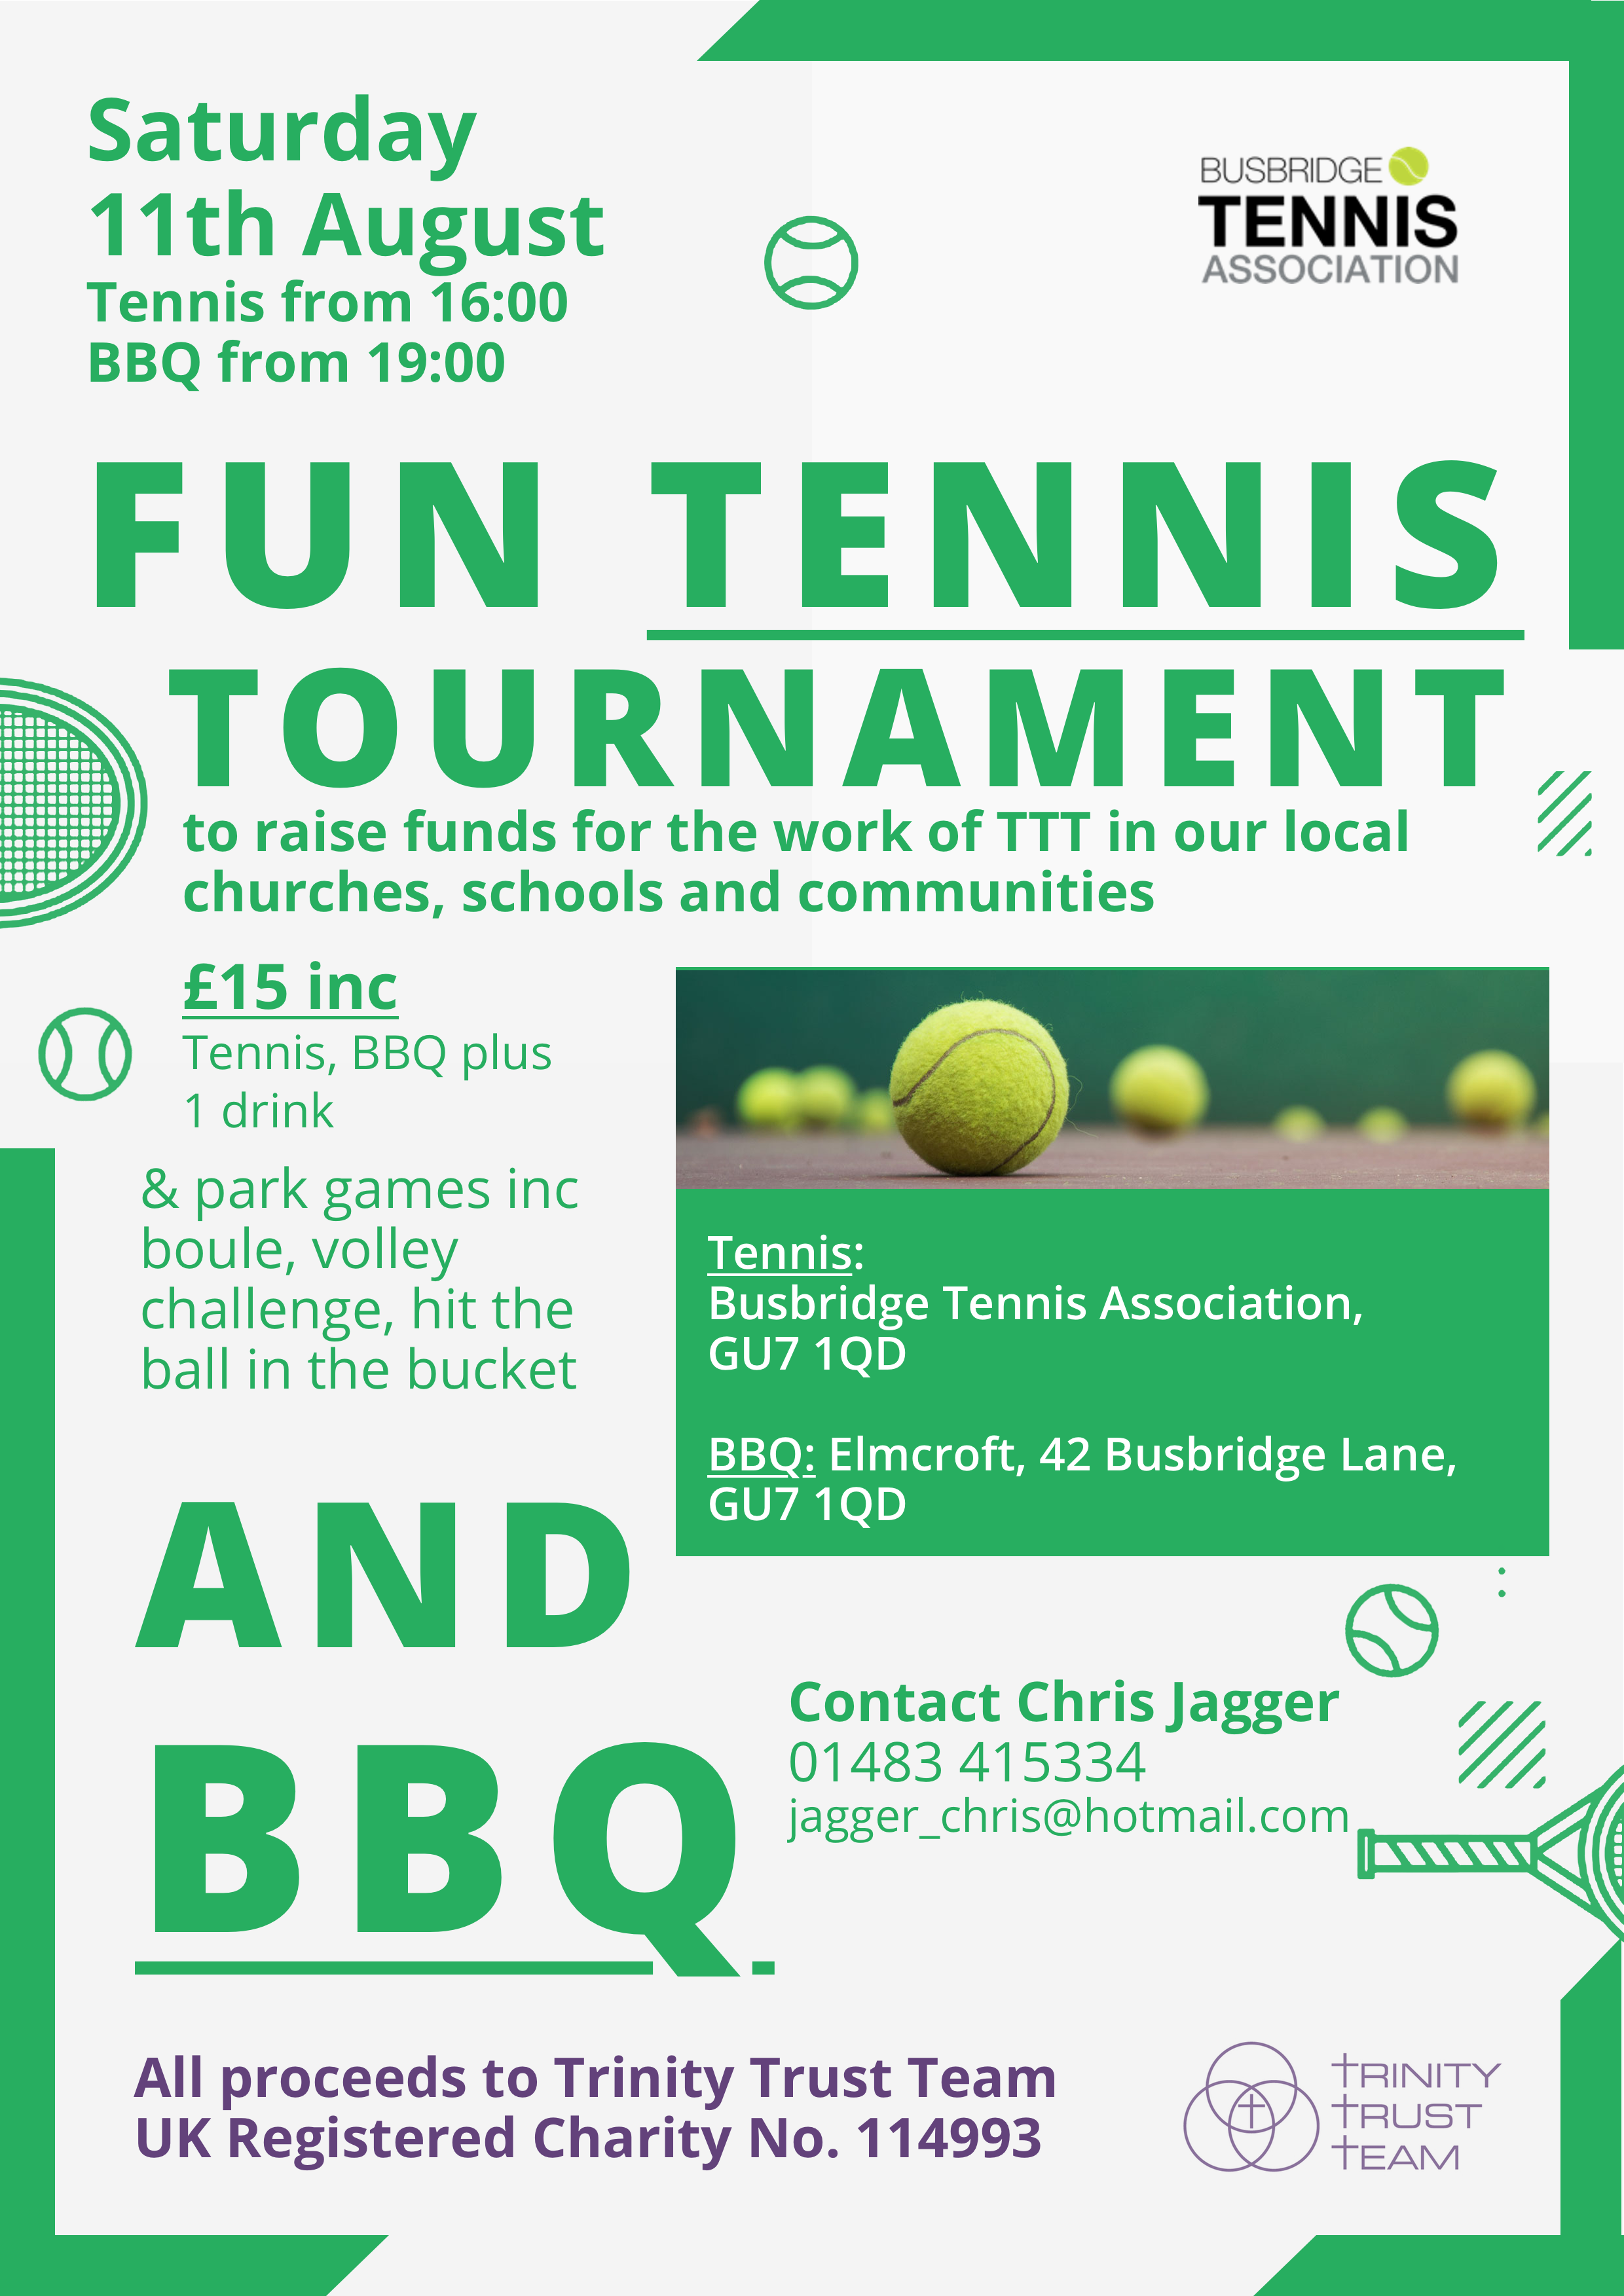 Trinity Trust Team Tennis and BBQ Fundraiser